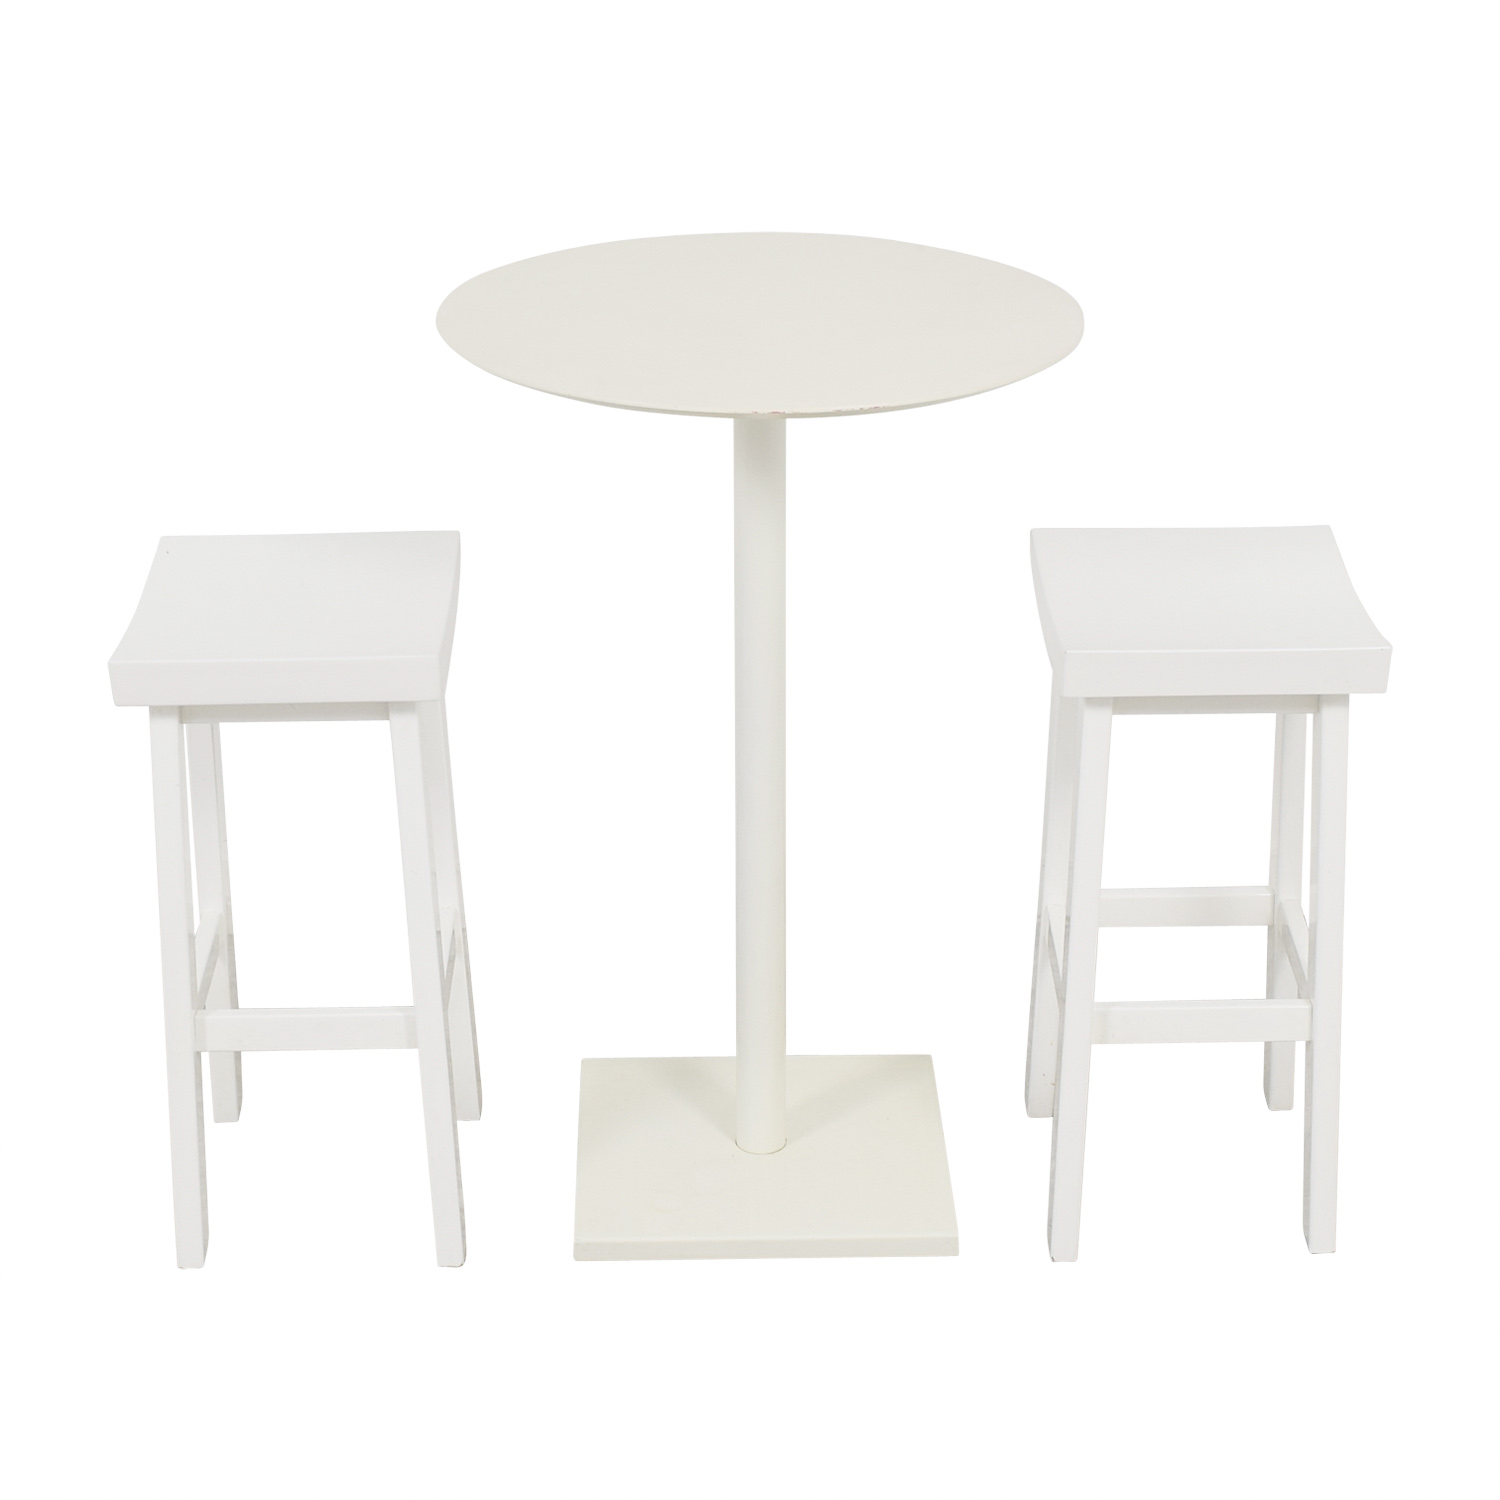 CB2 CB2 White High-Top Table and Stools second hand